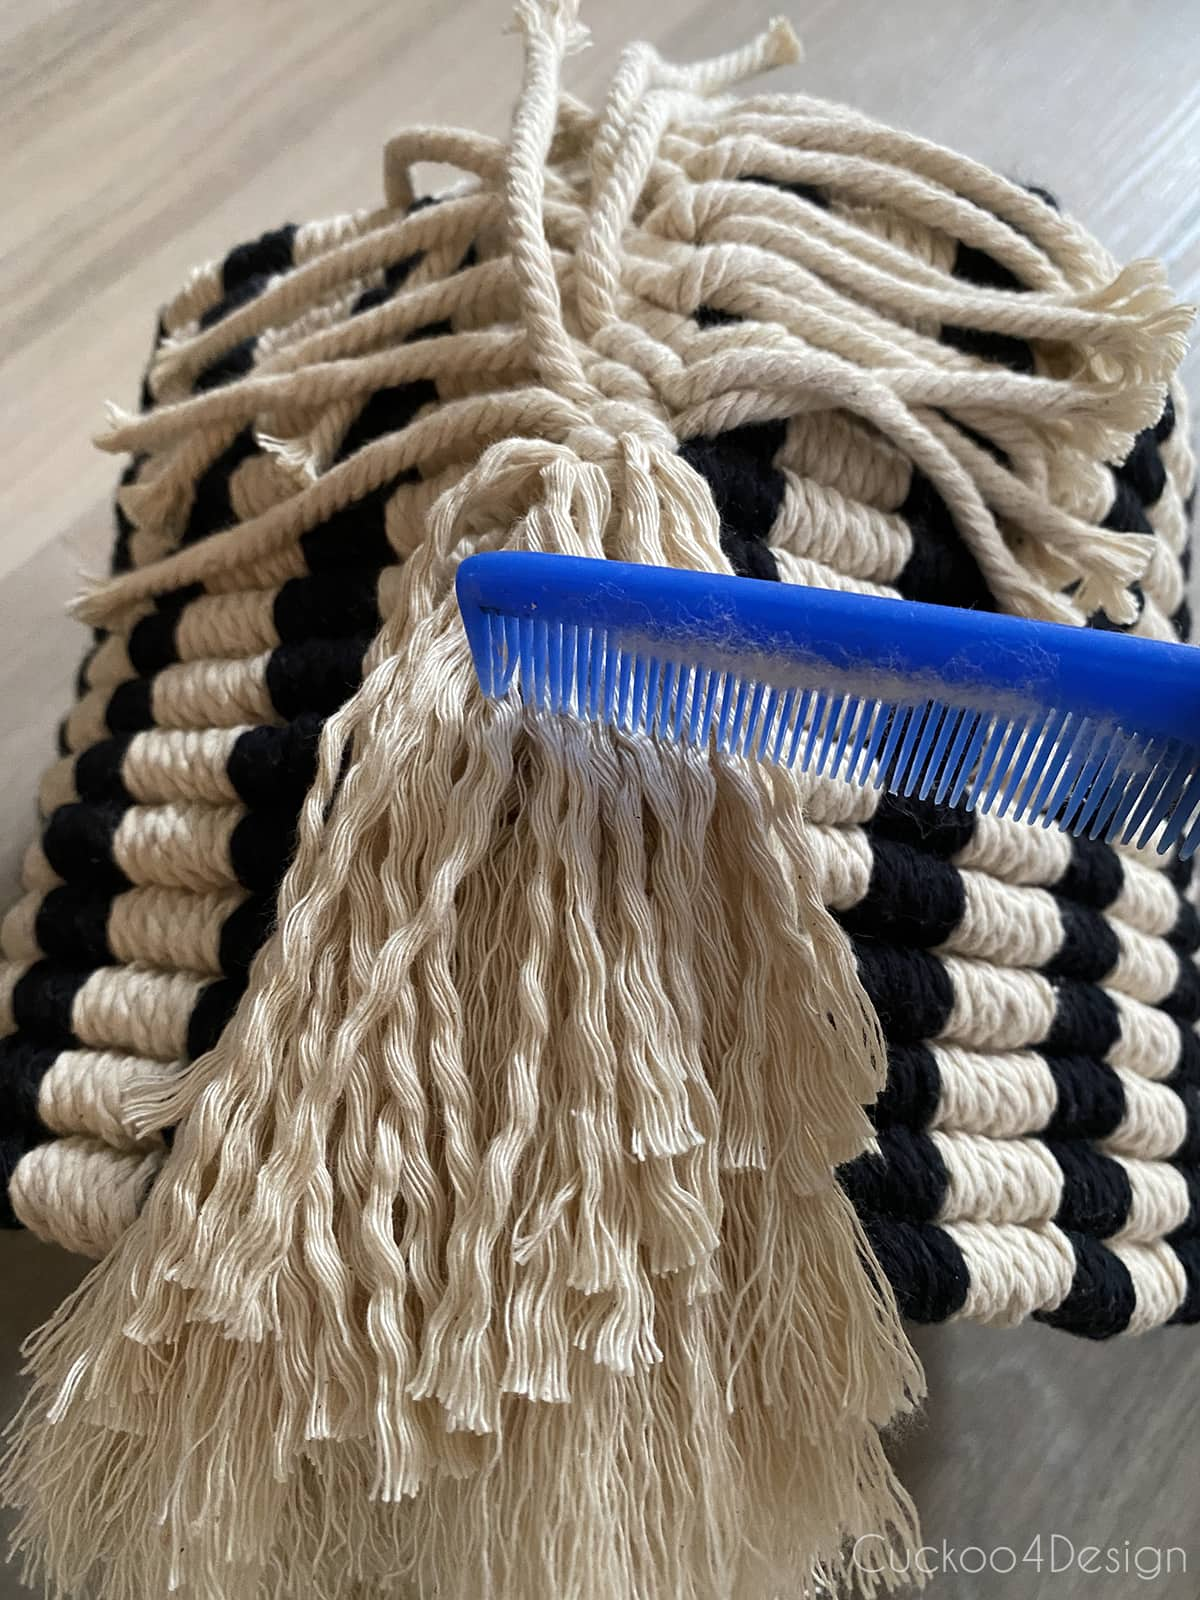 combing the macrame string